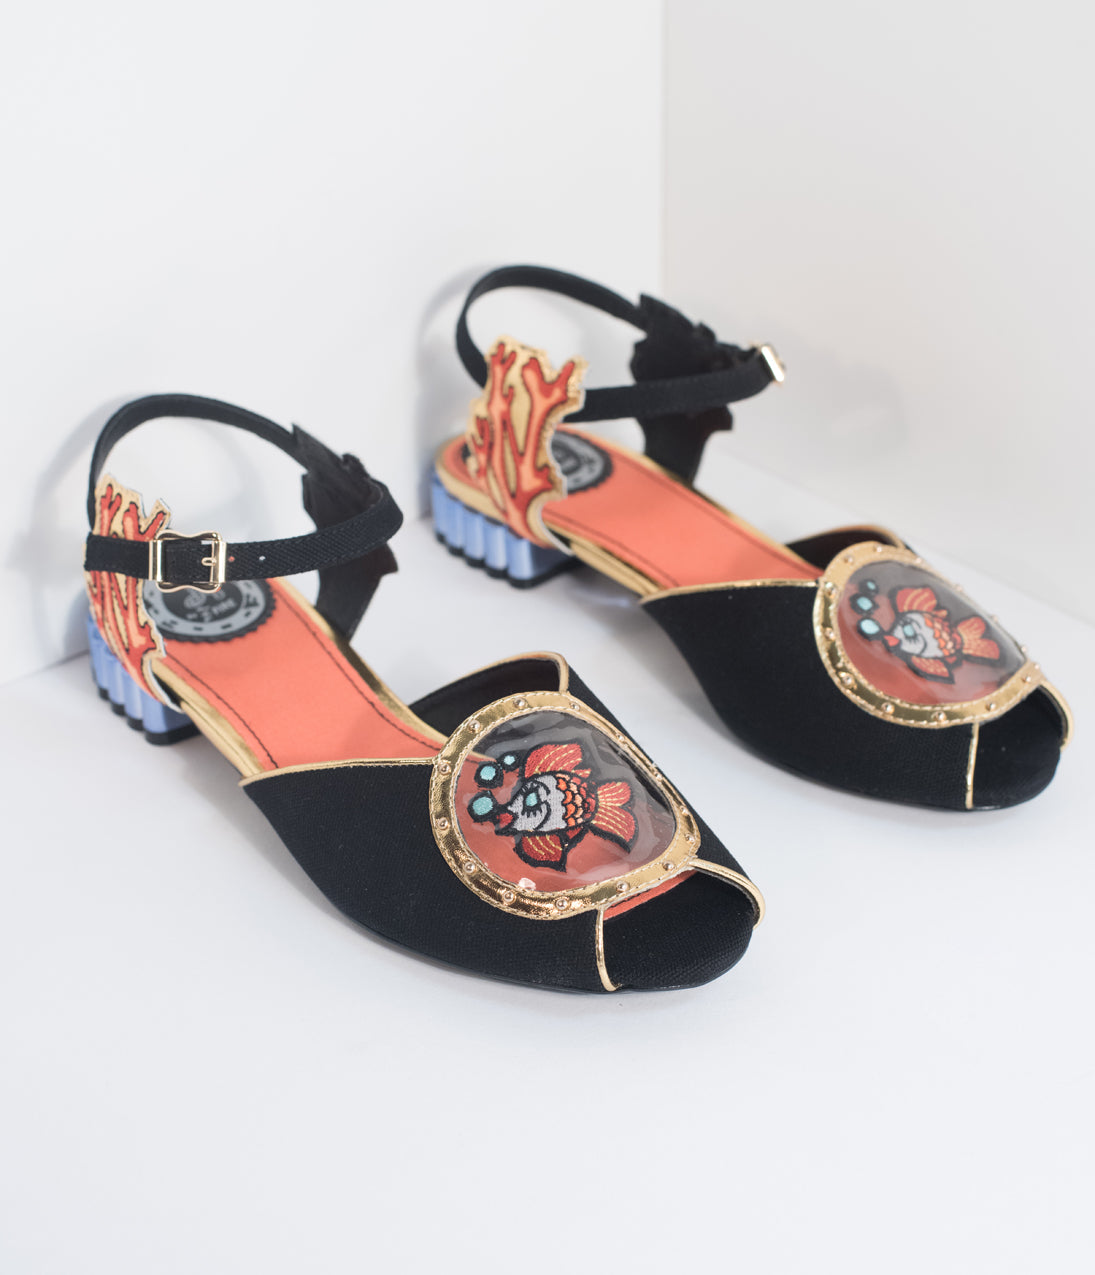 1950s Style Shoes Miss L Fire Black Nautical Peep Toe Ariel Sandals $120.00 AT vintagedancer.com